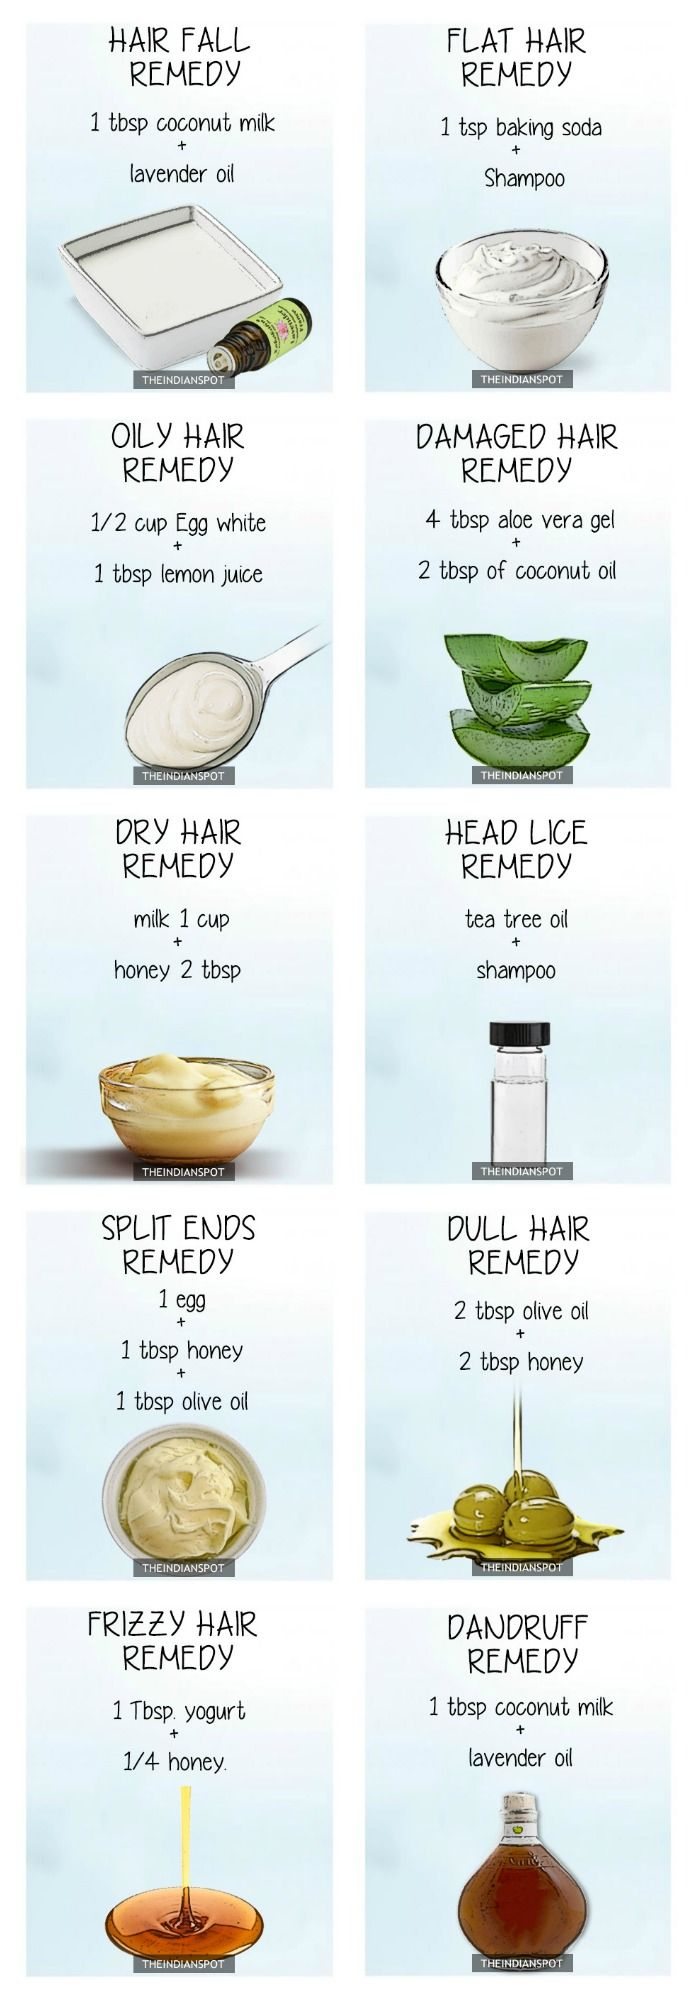 TOP 10 NATURAL REMEDIES FOR EVERY HAIR PROBLEM